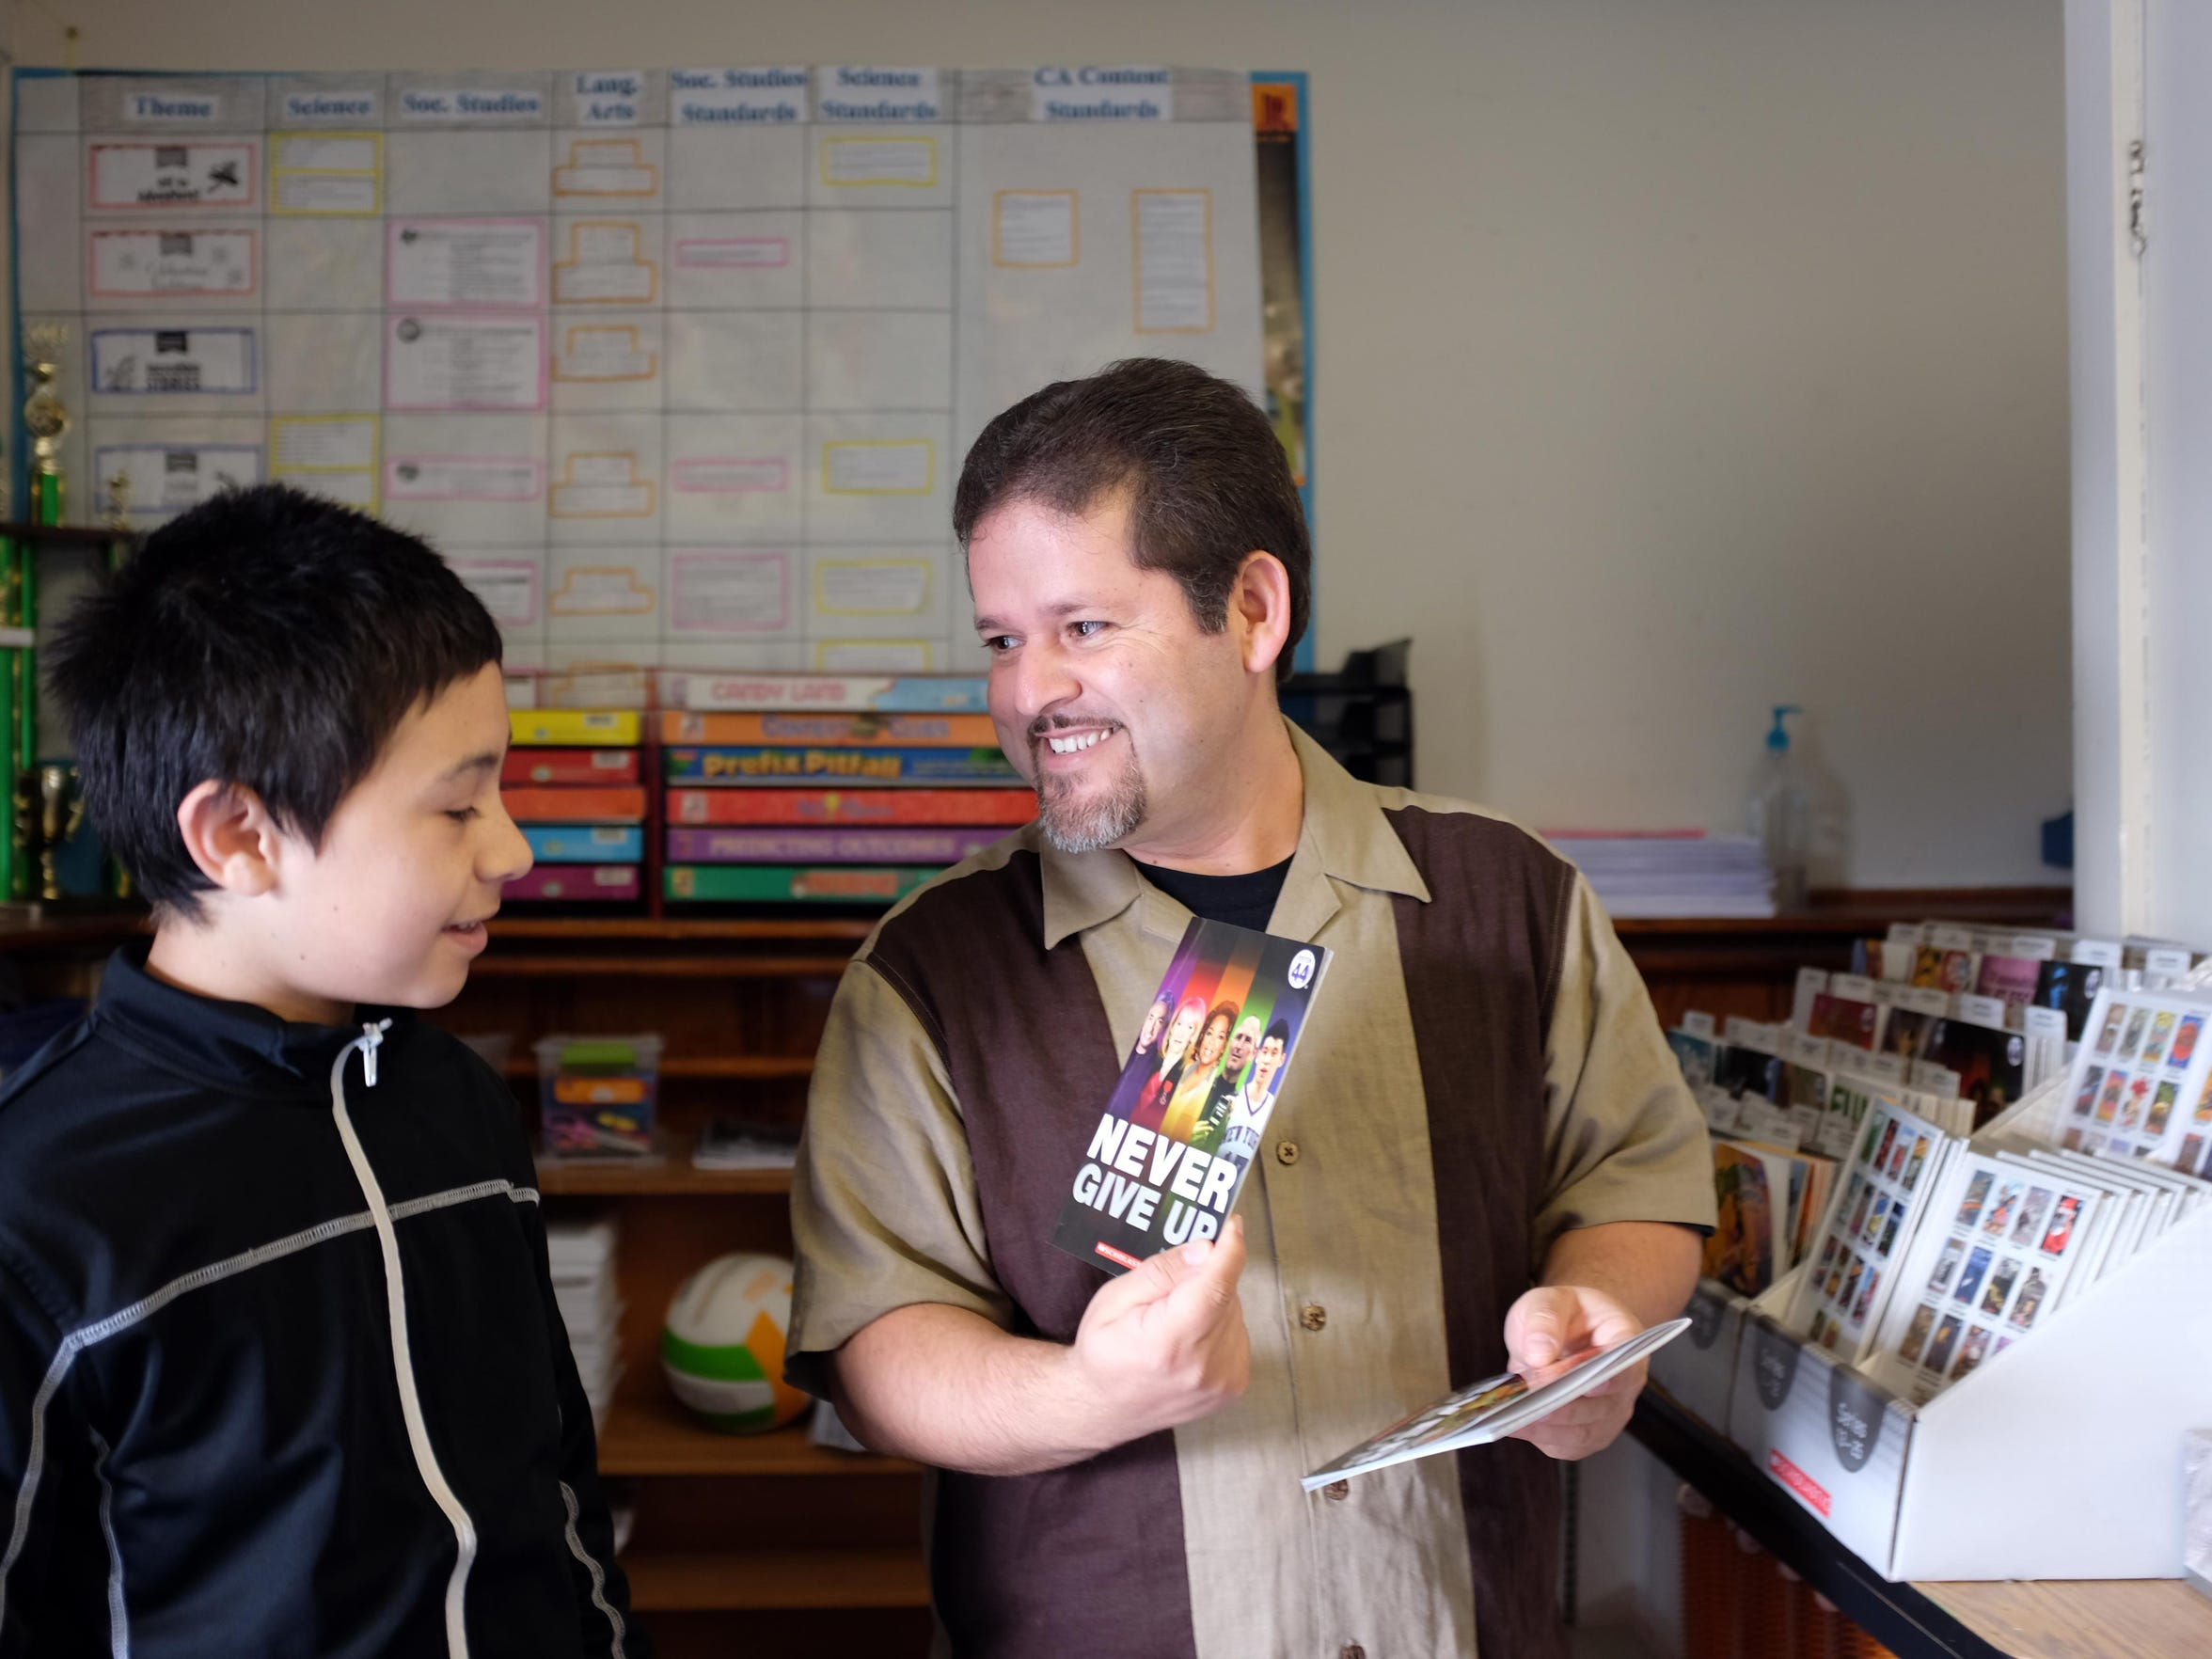 A December 2015 photo of Sherwood Elementary School teacher Oscar Ramos with José Anzaldo in Salinas, in Mr. Ramos' classroom where José was a student.